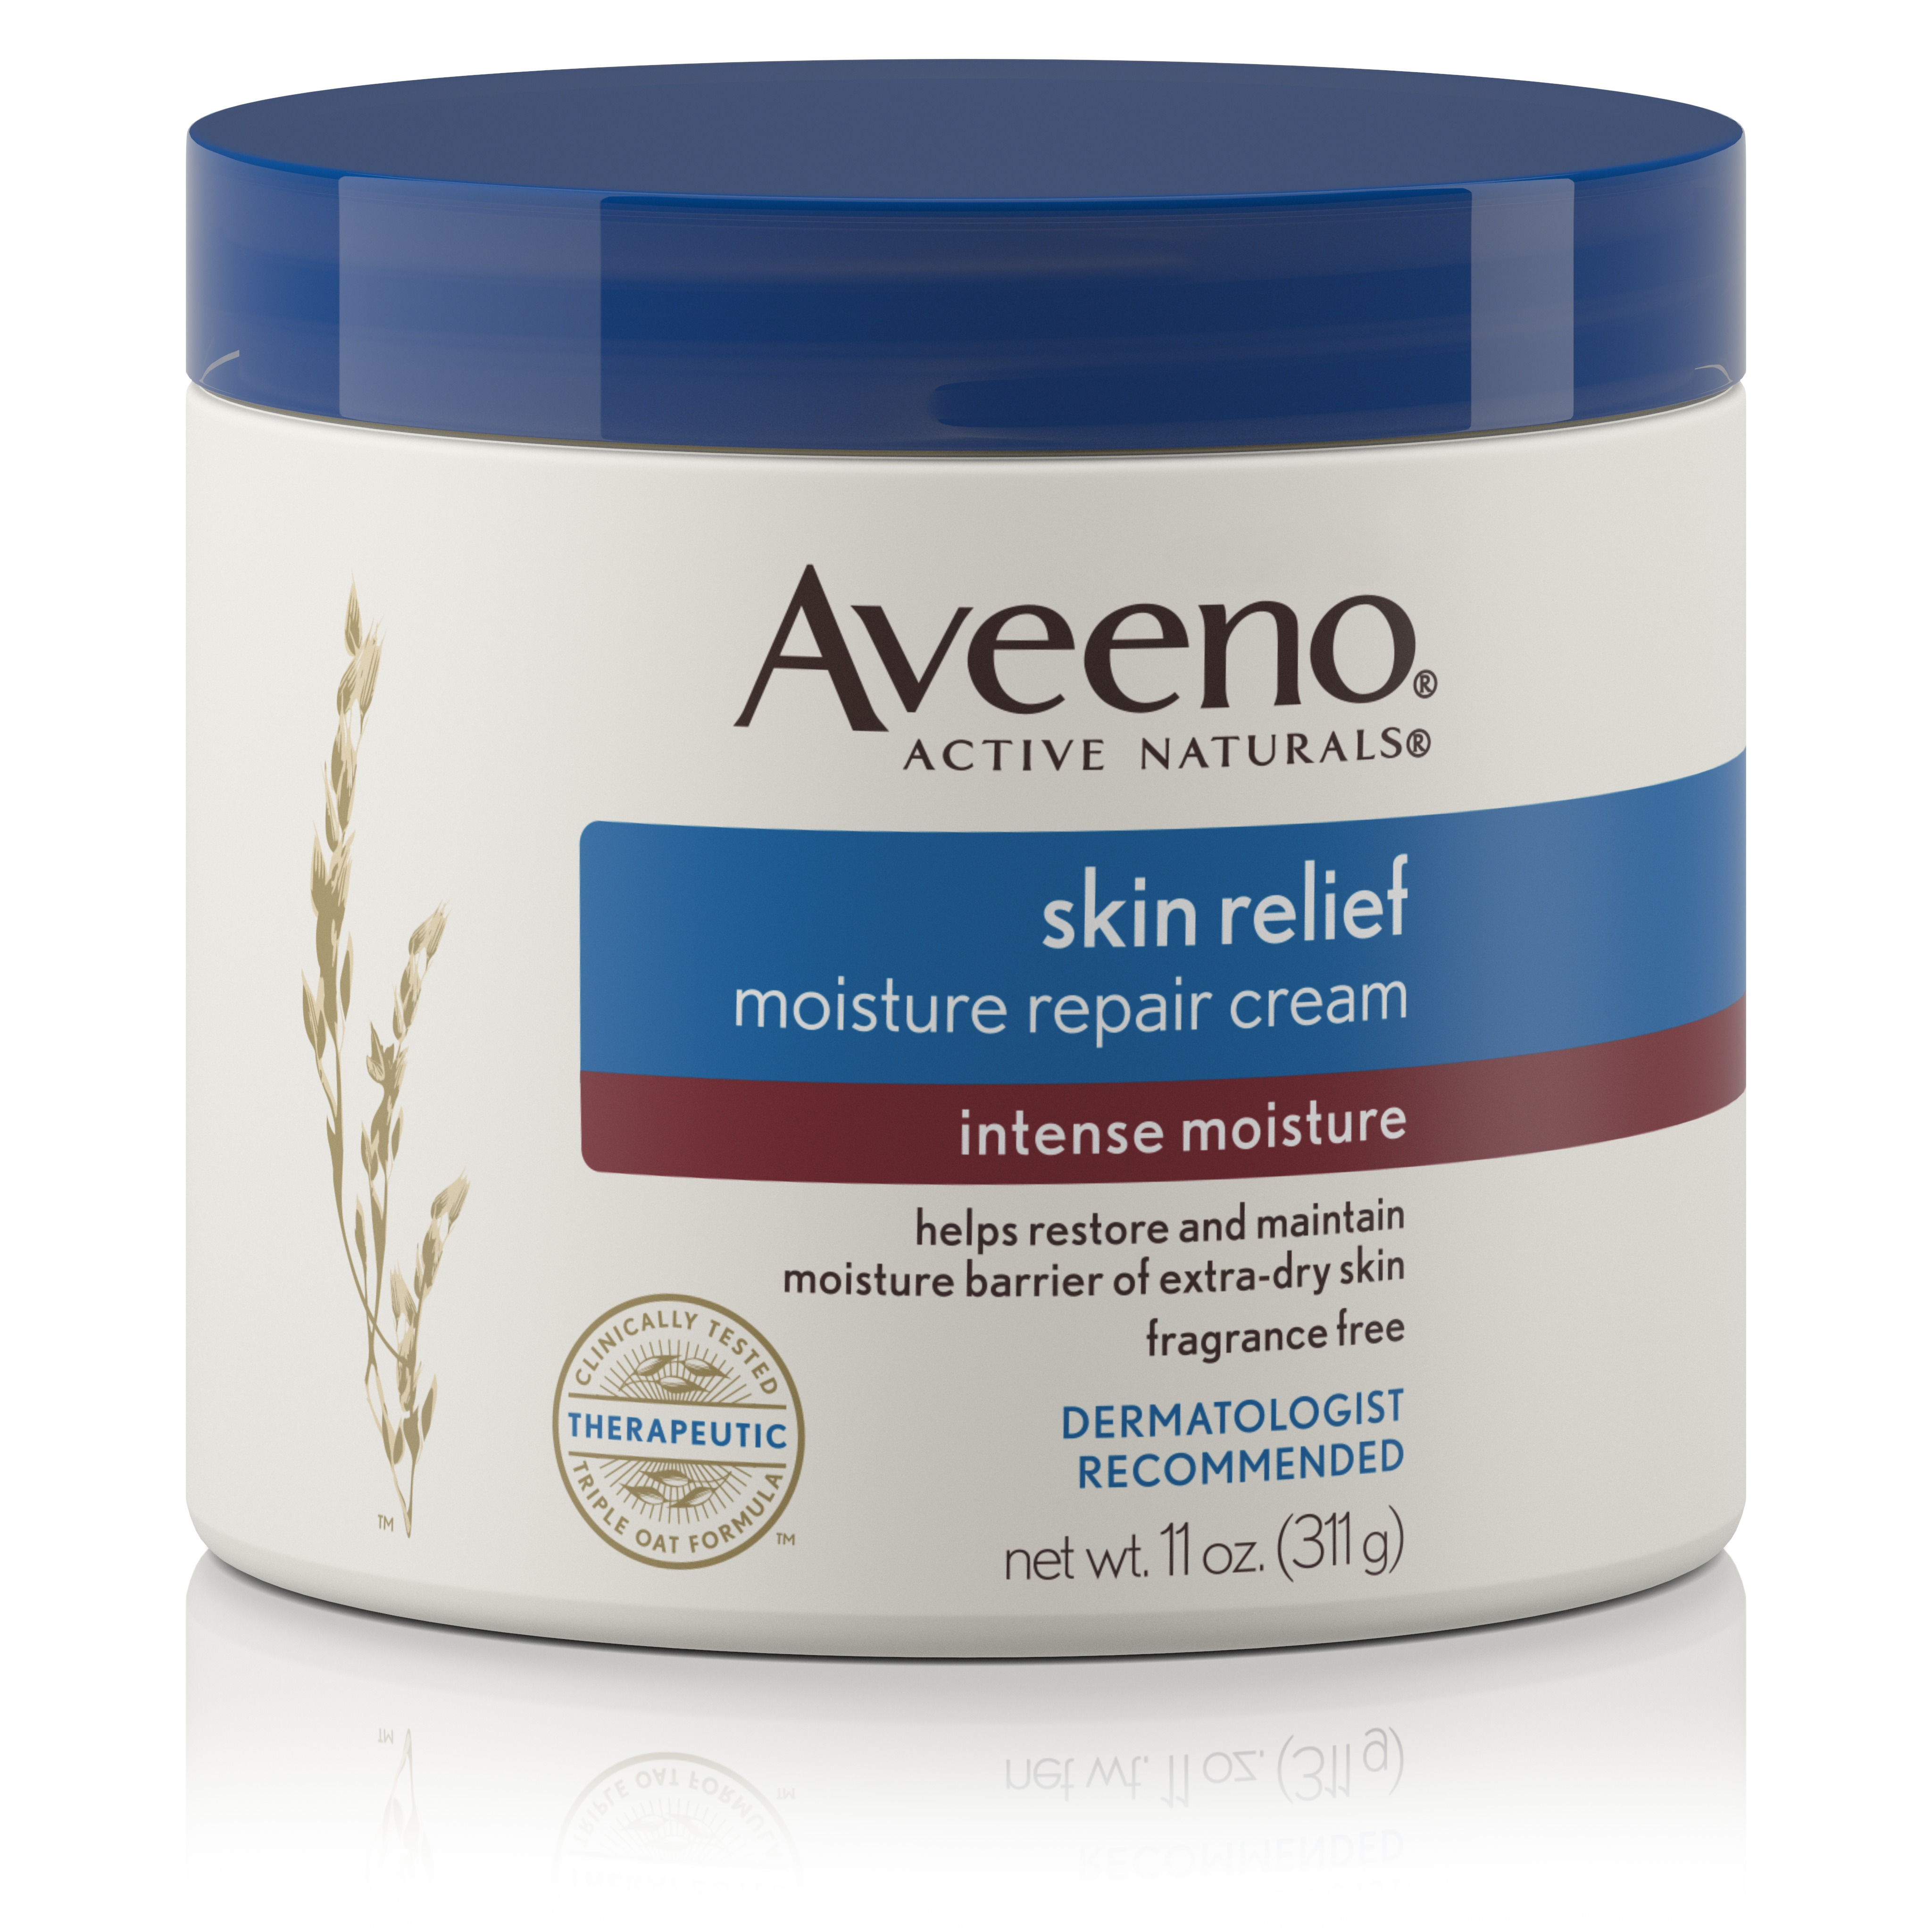 Aveeno Skin Relief Intense Moisture Repair Cream, 11 Oz - Walmart.com